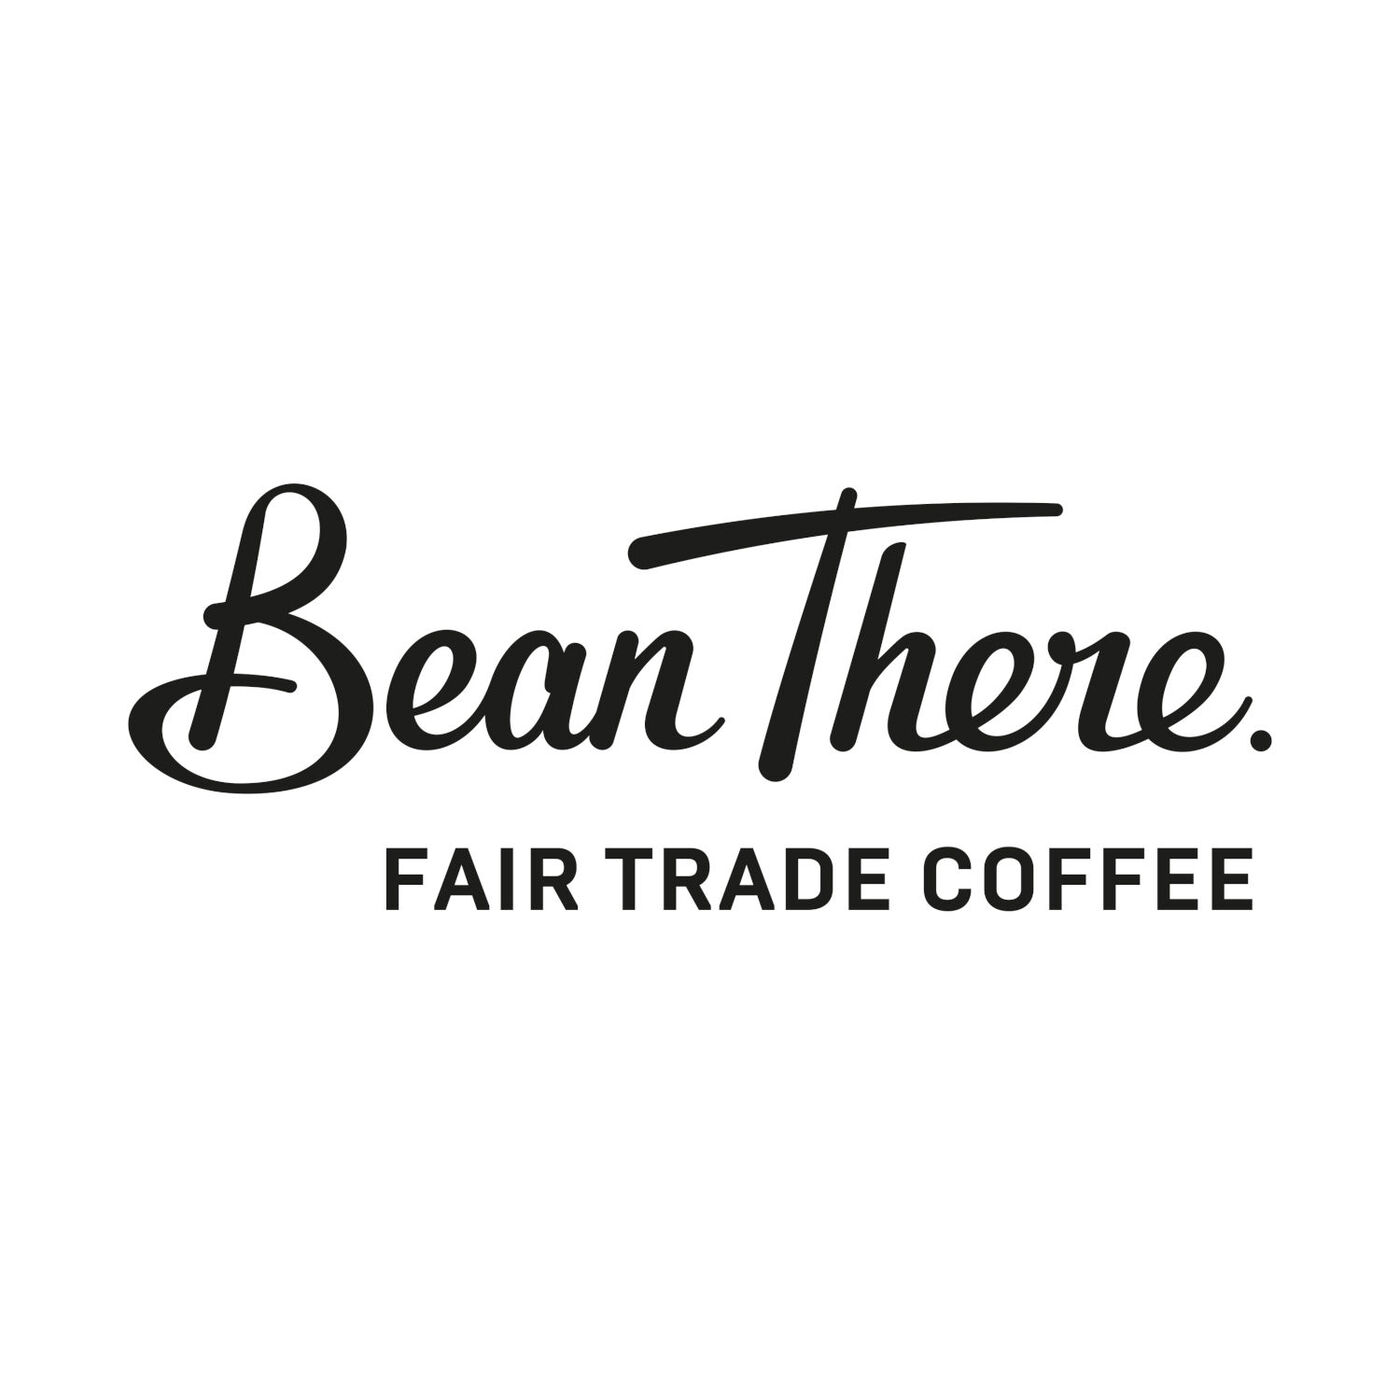 Episode 3 - Jonathan Robinson from Bean There